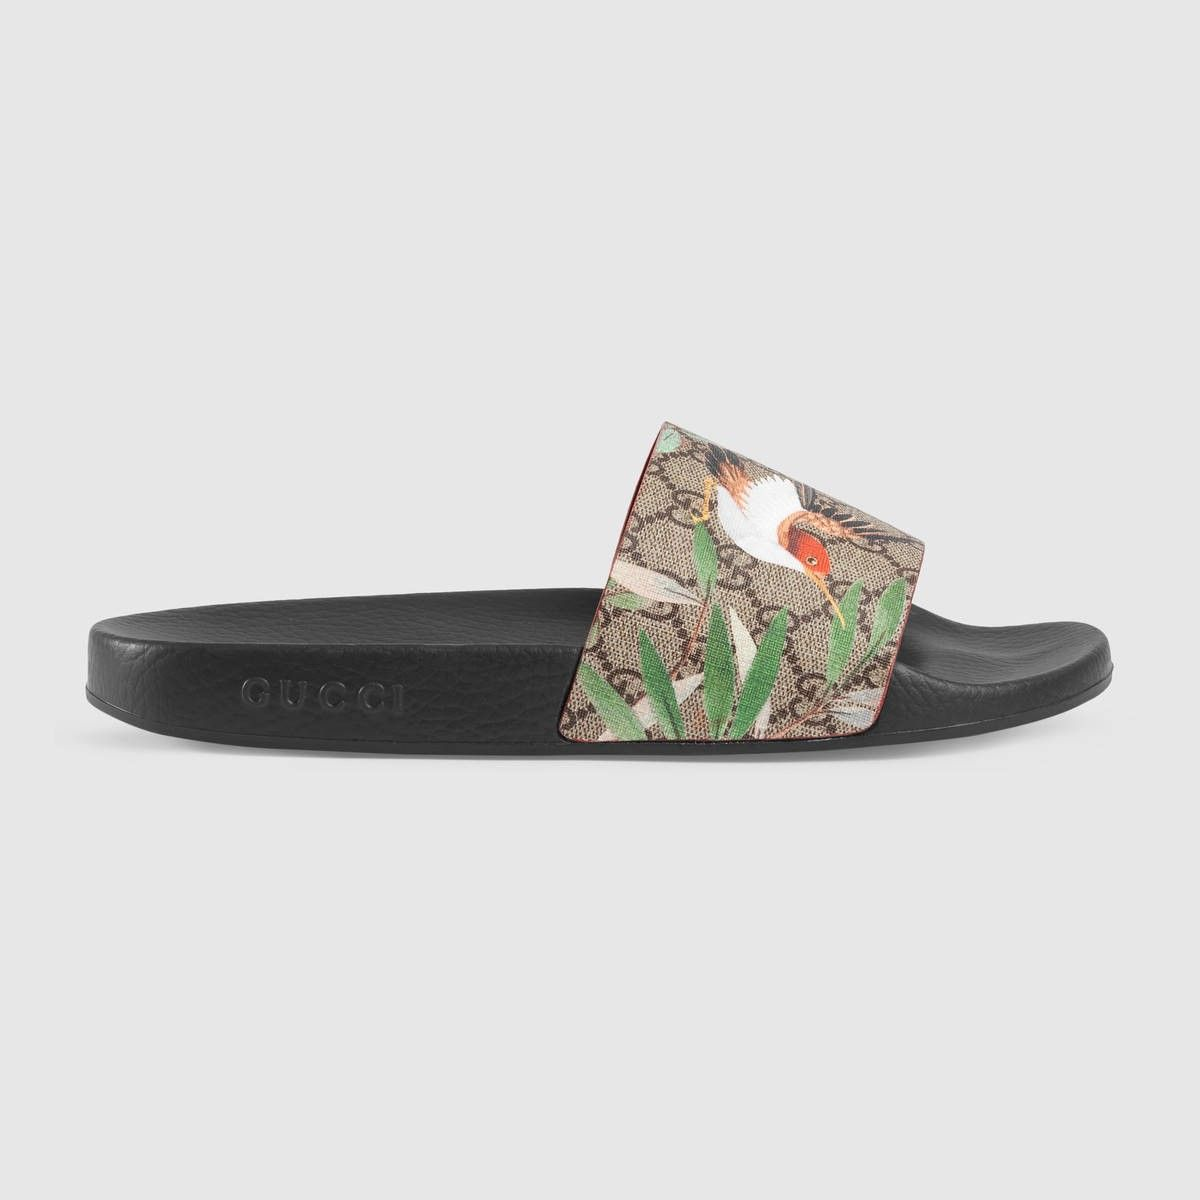 80a05feaf5d GUCCI Men s Gucci Tian slide sandal - GG Supreme tian.  gucci  shoes ...